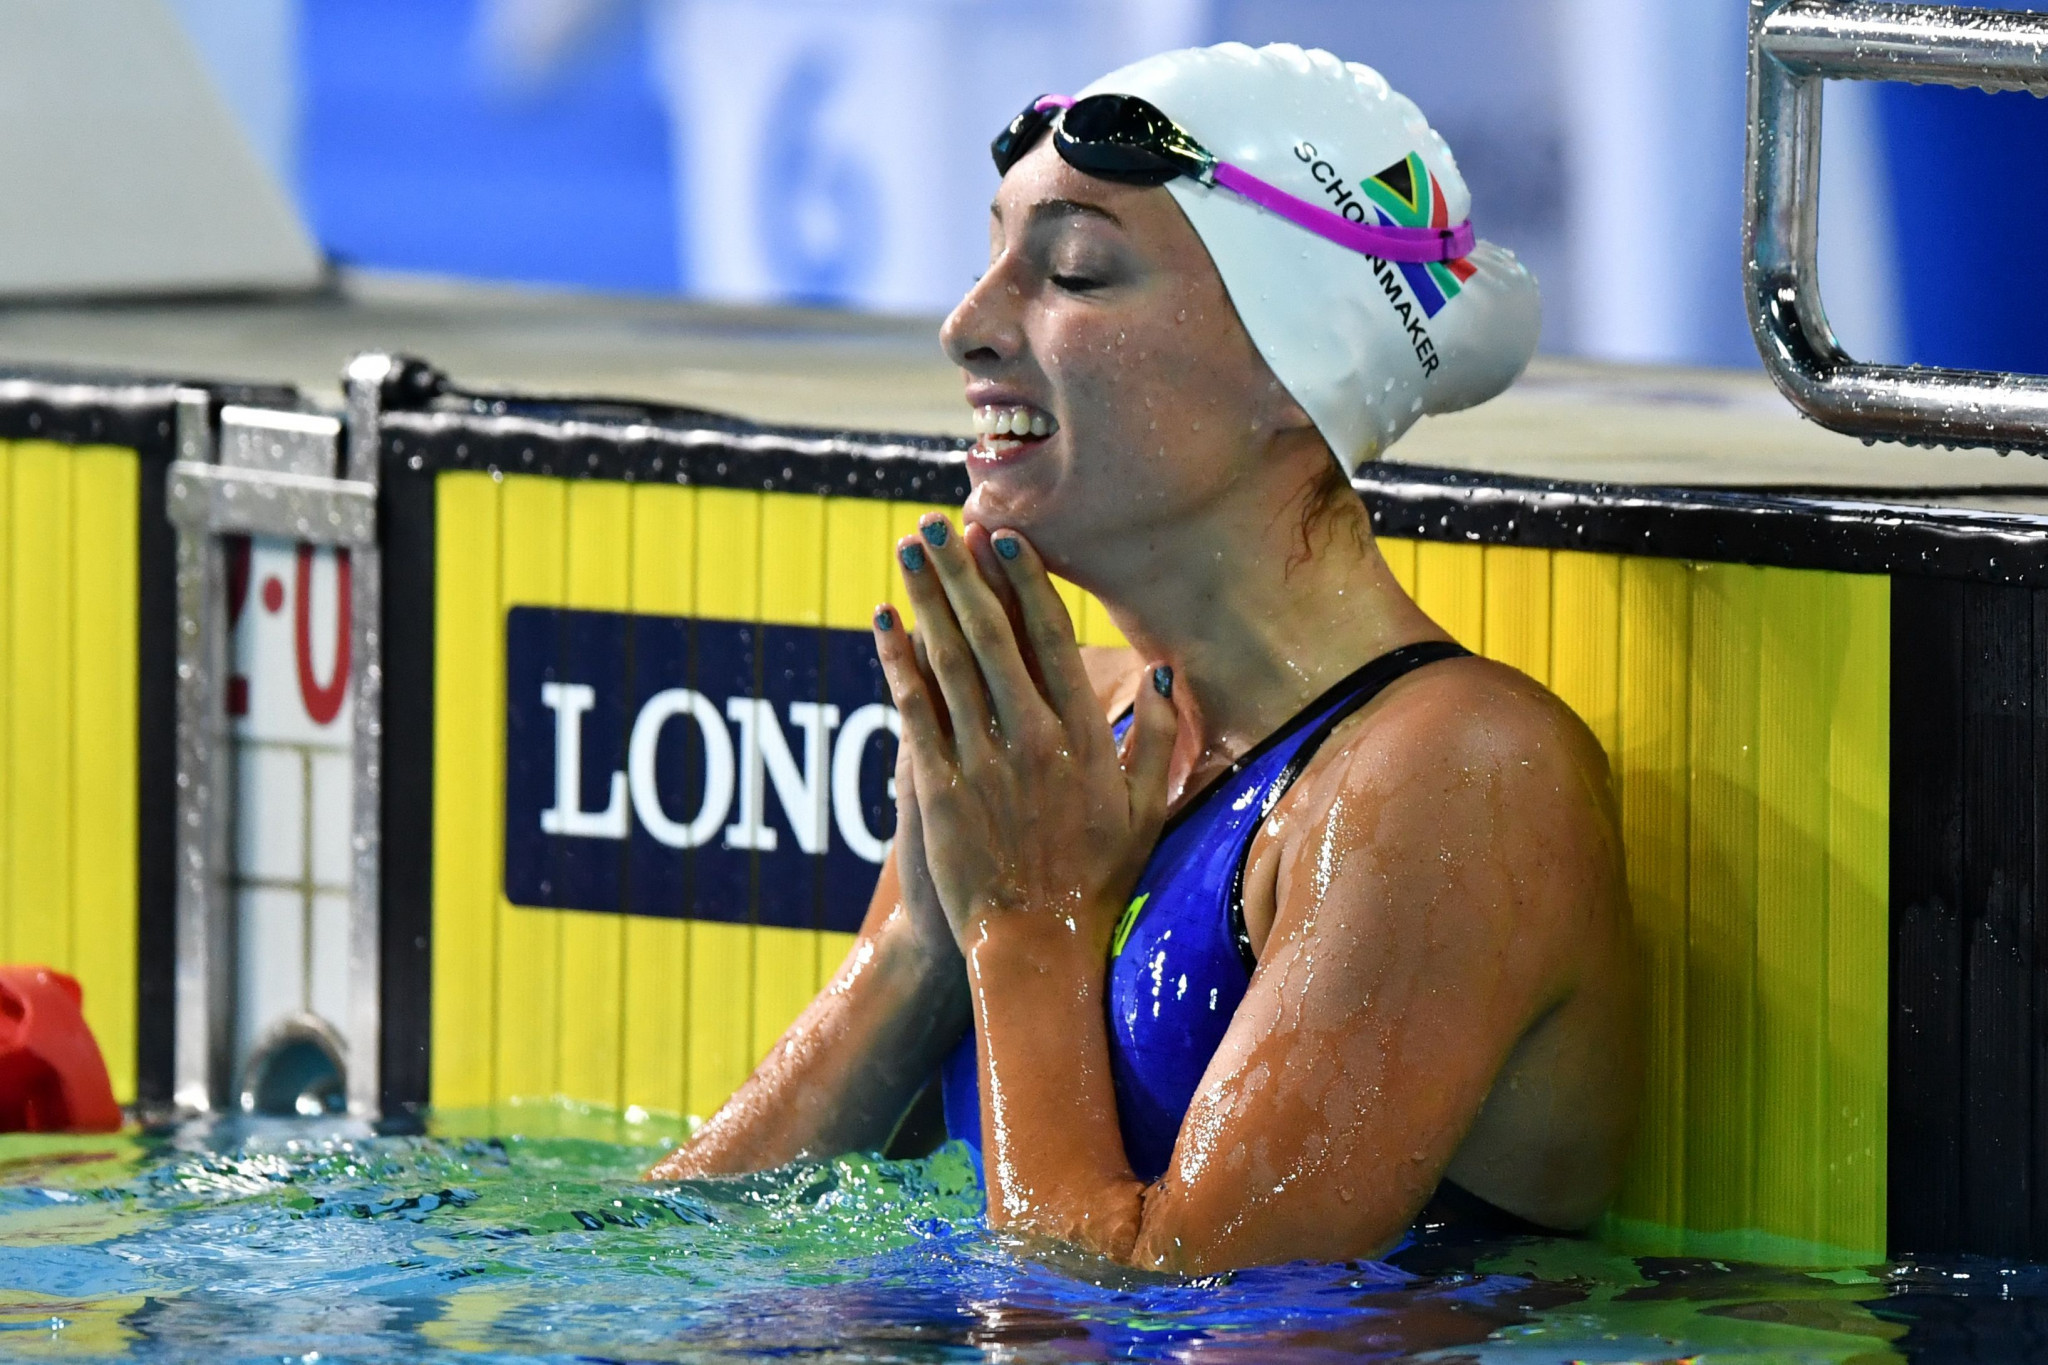 Tatjana Schoenmaker also won gold today on a good night for South Africa ©Getty Images